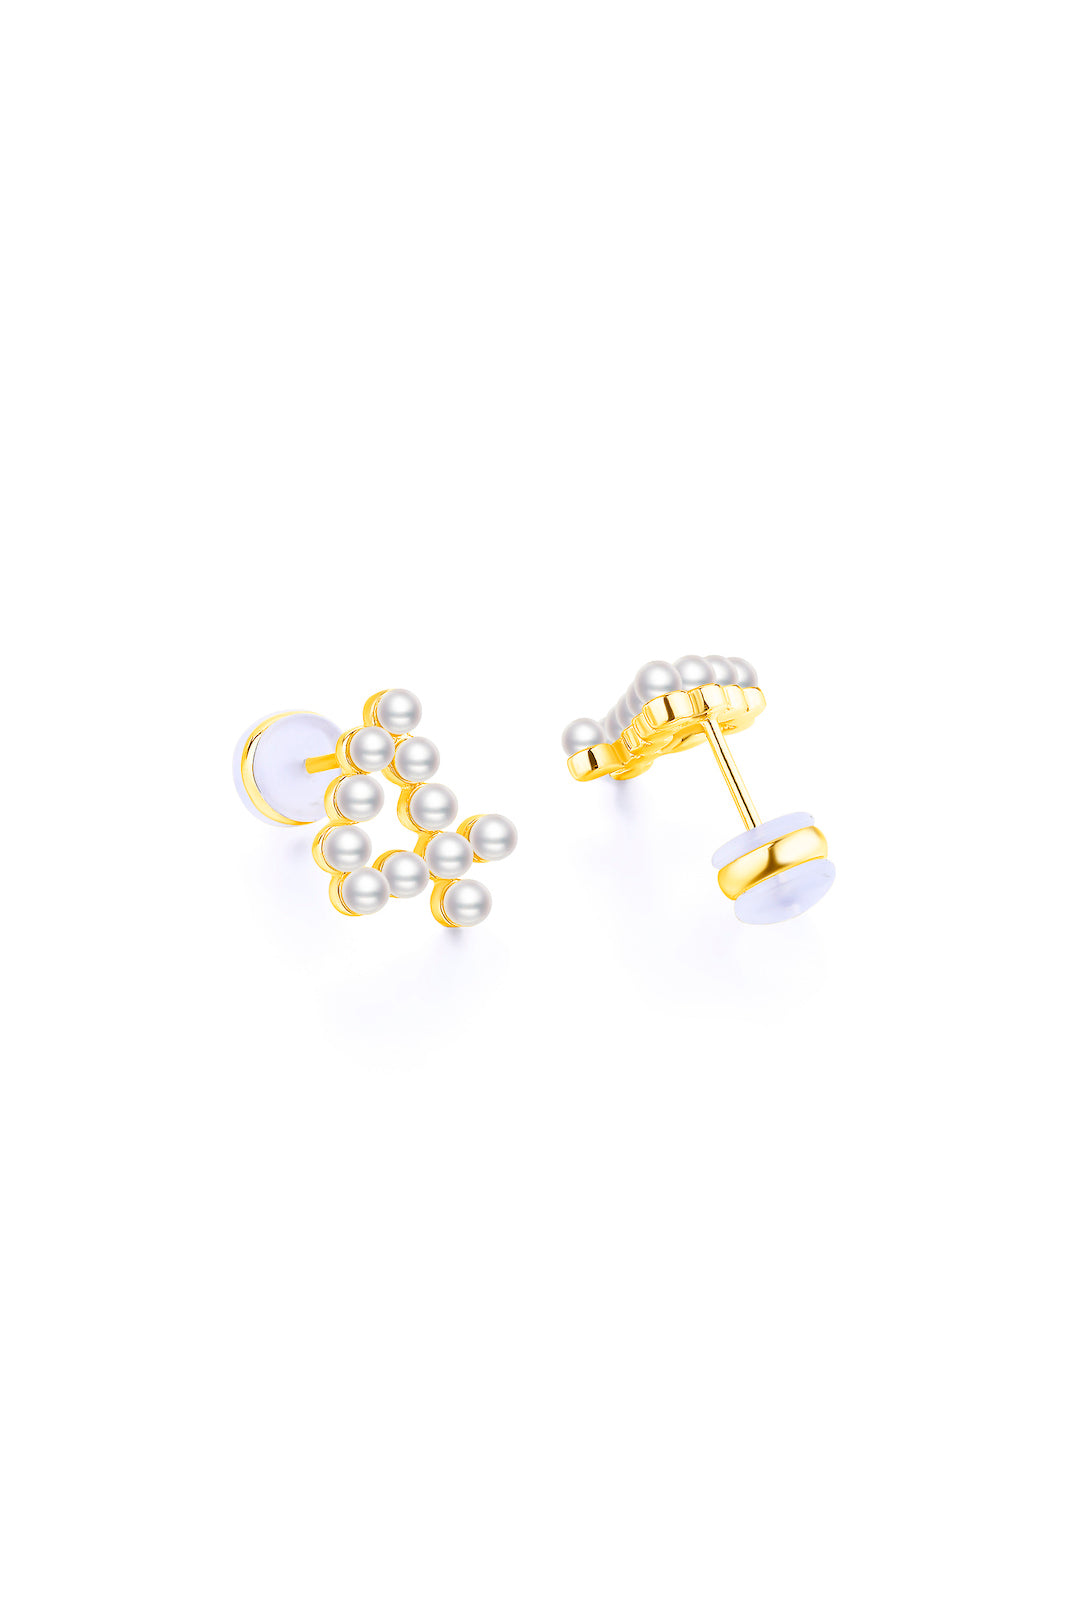 Gold Plated Silver Pearl Ear Studs - Number 4 Back View